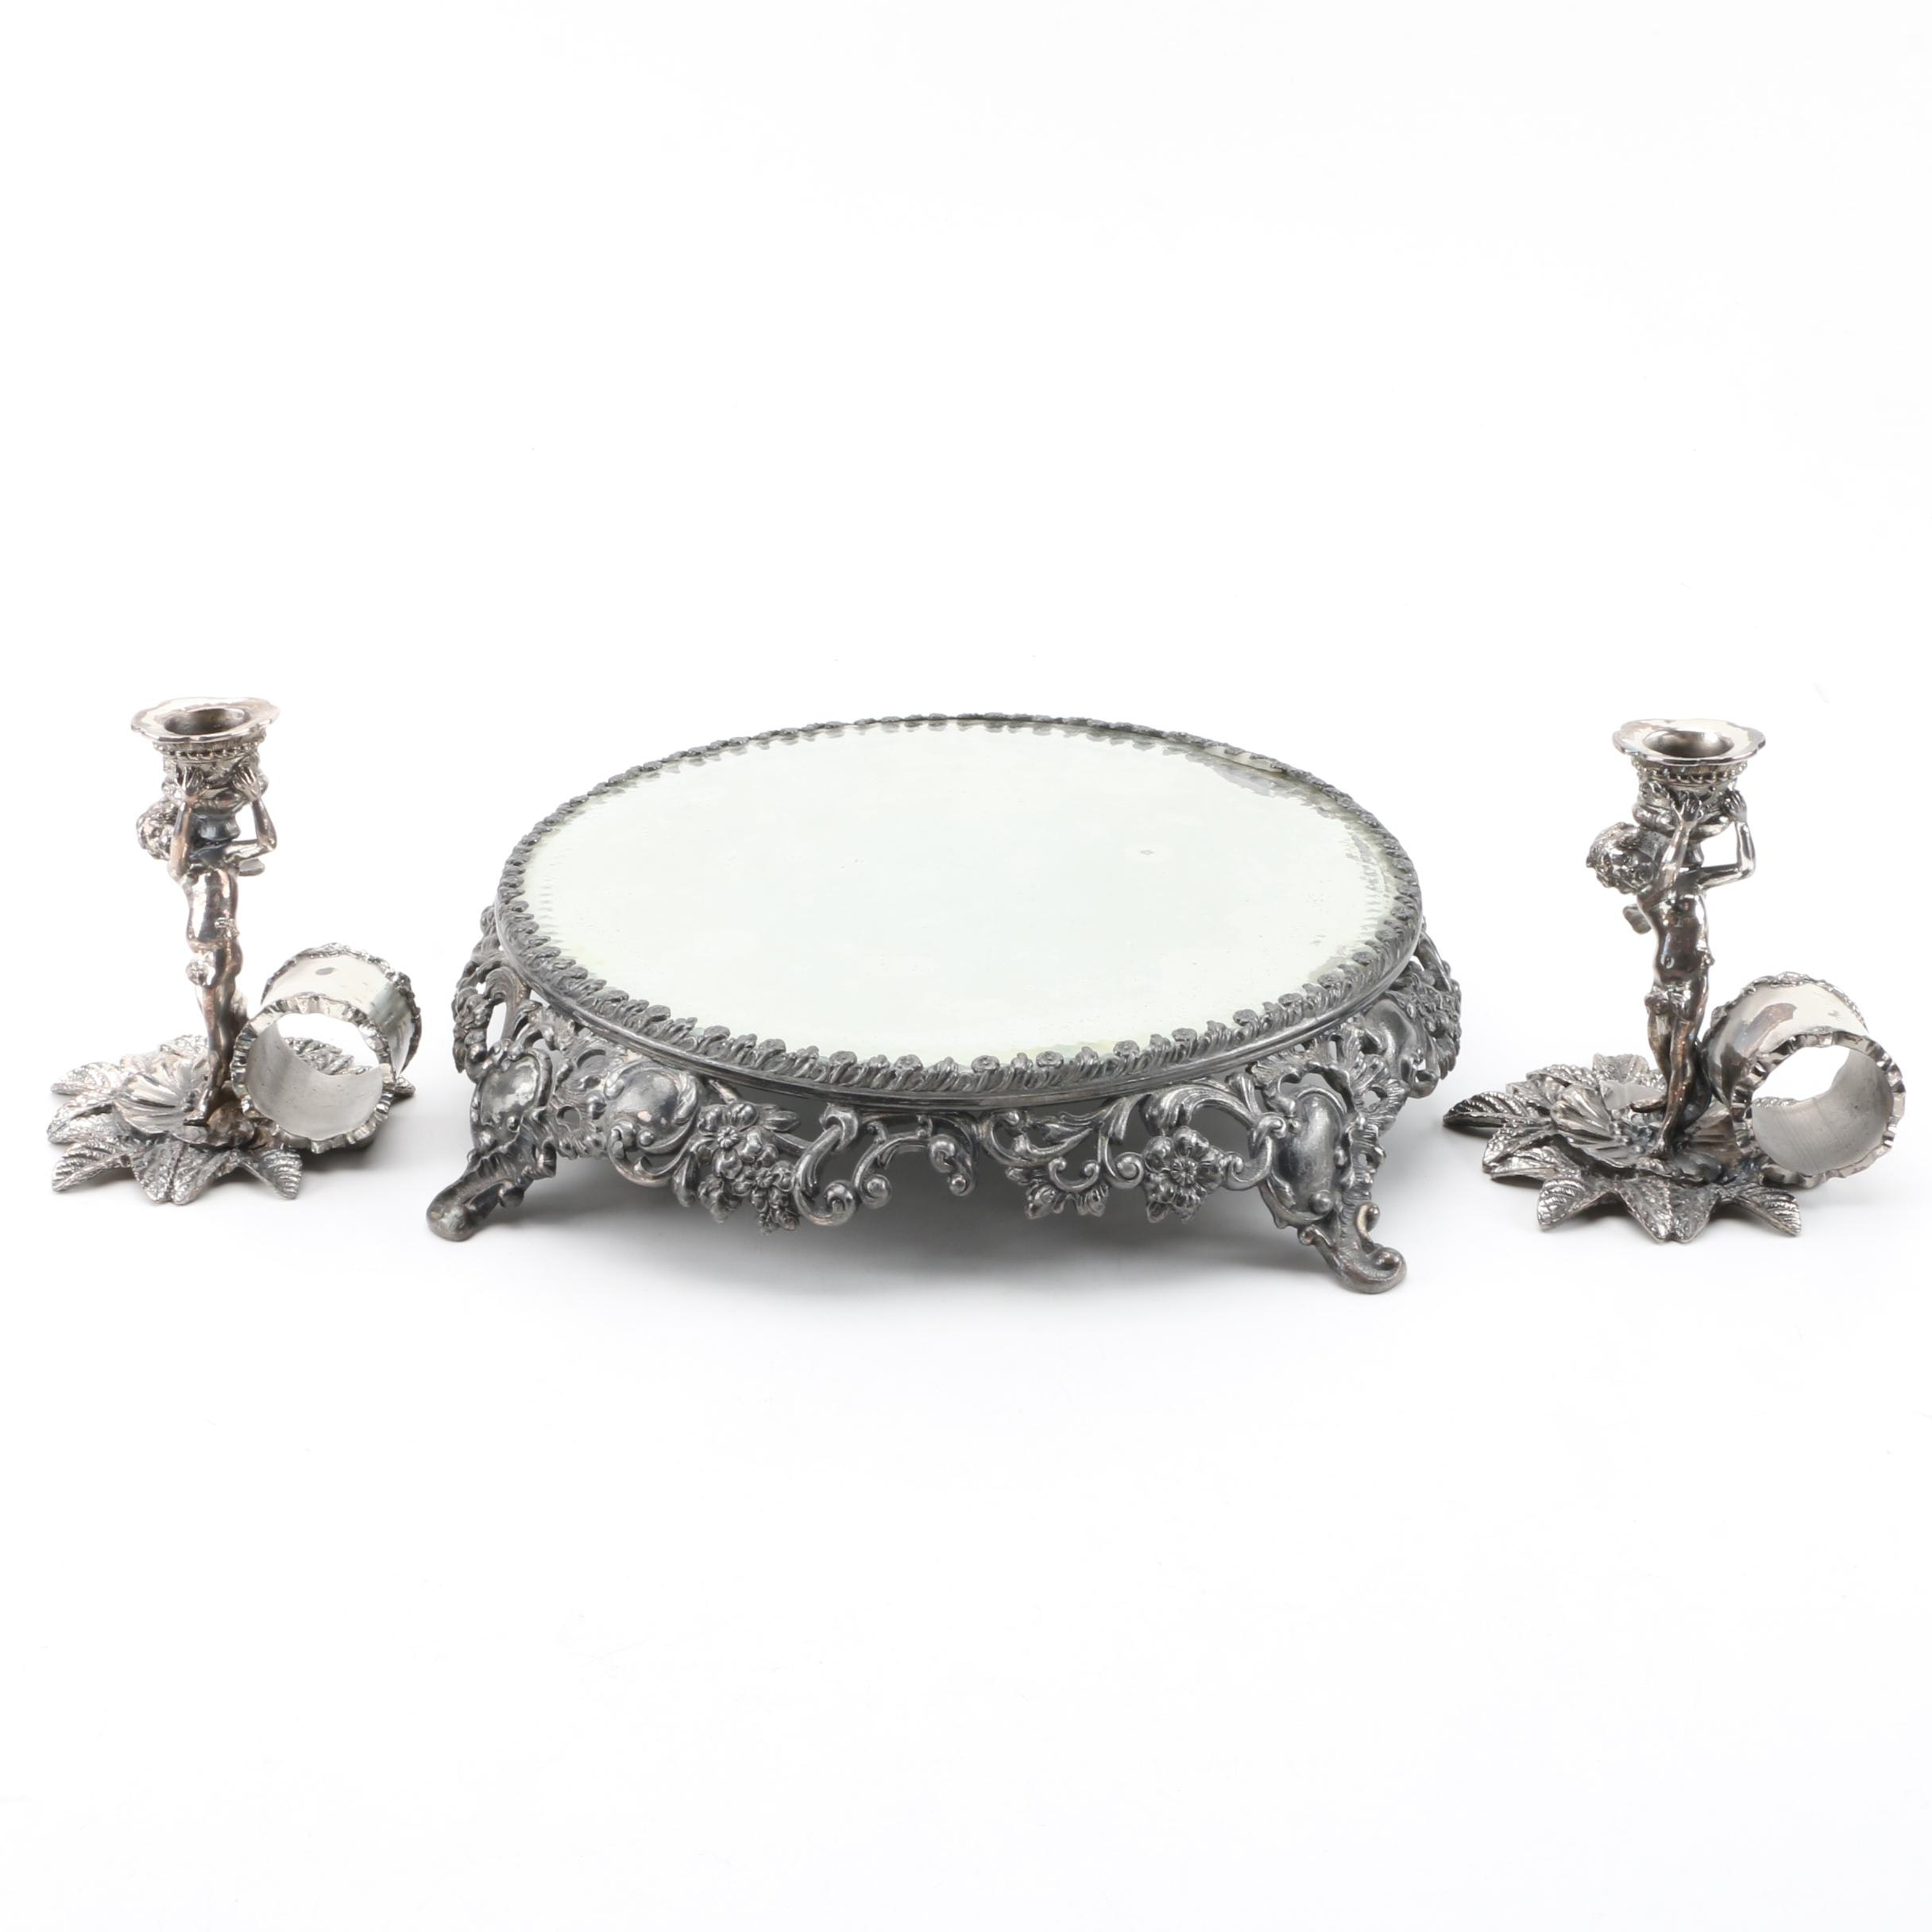 Beaucoup Design Candlesticks and Ormolu Style Vanity Tray